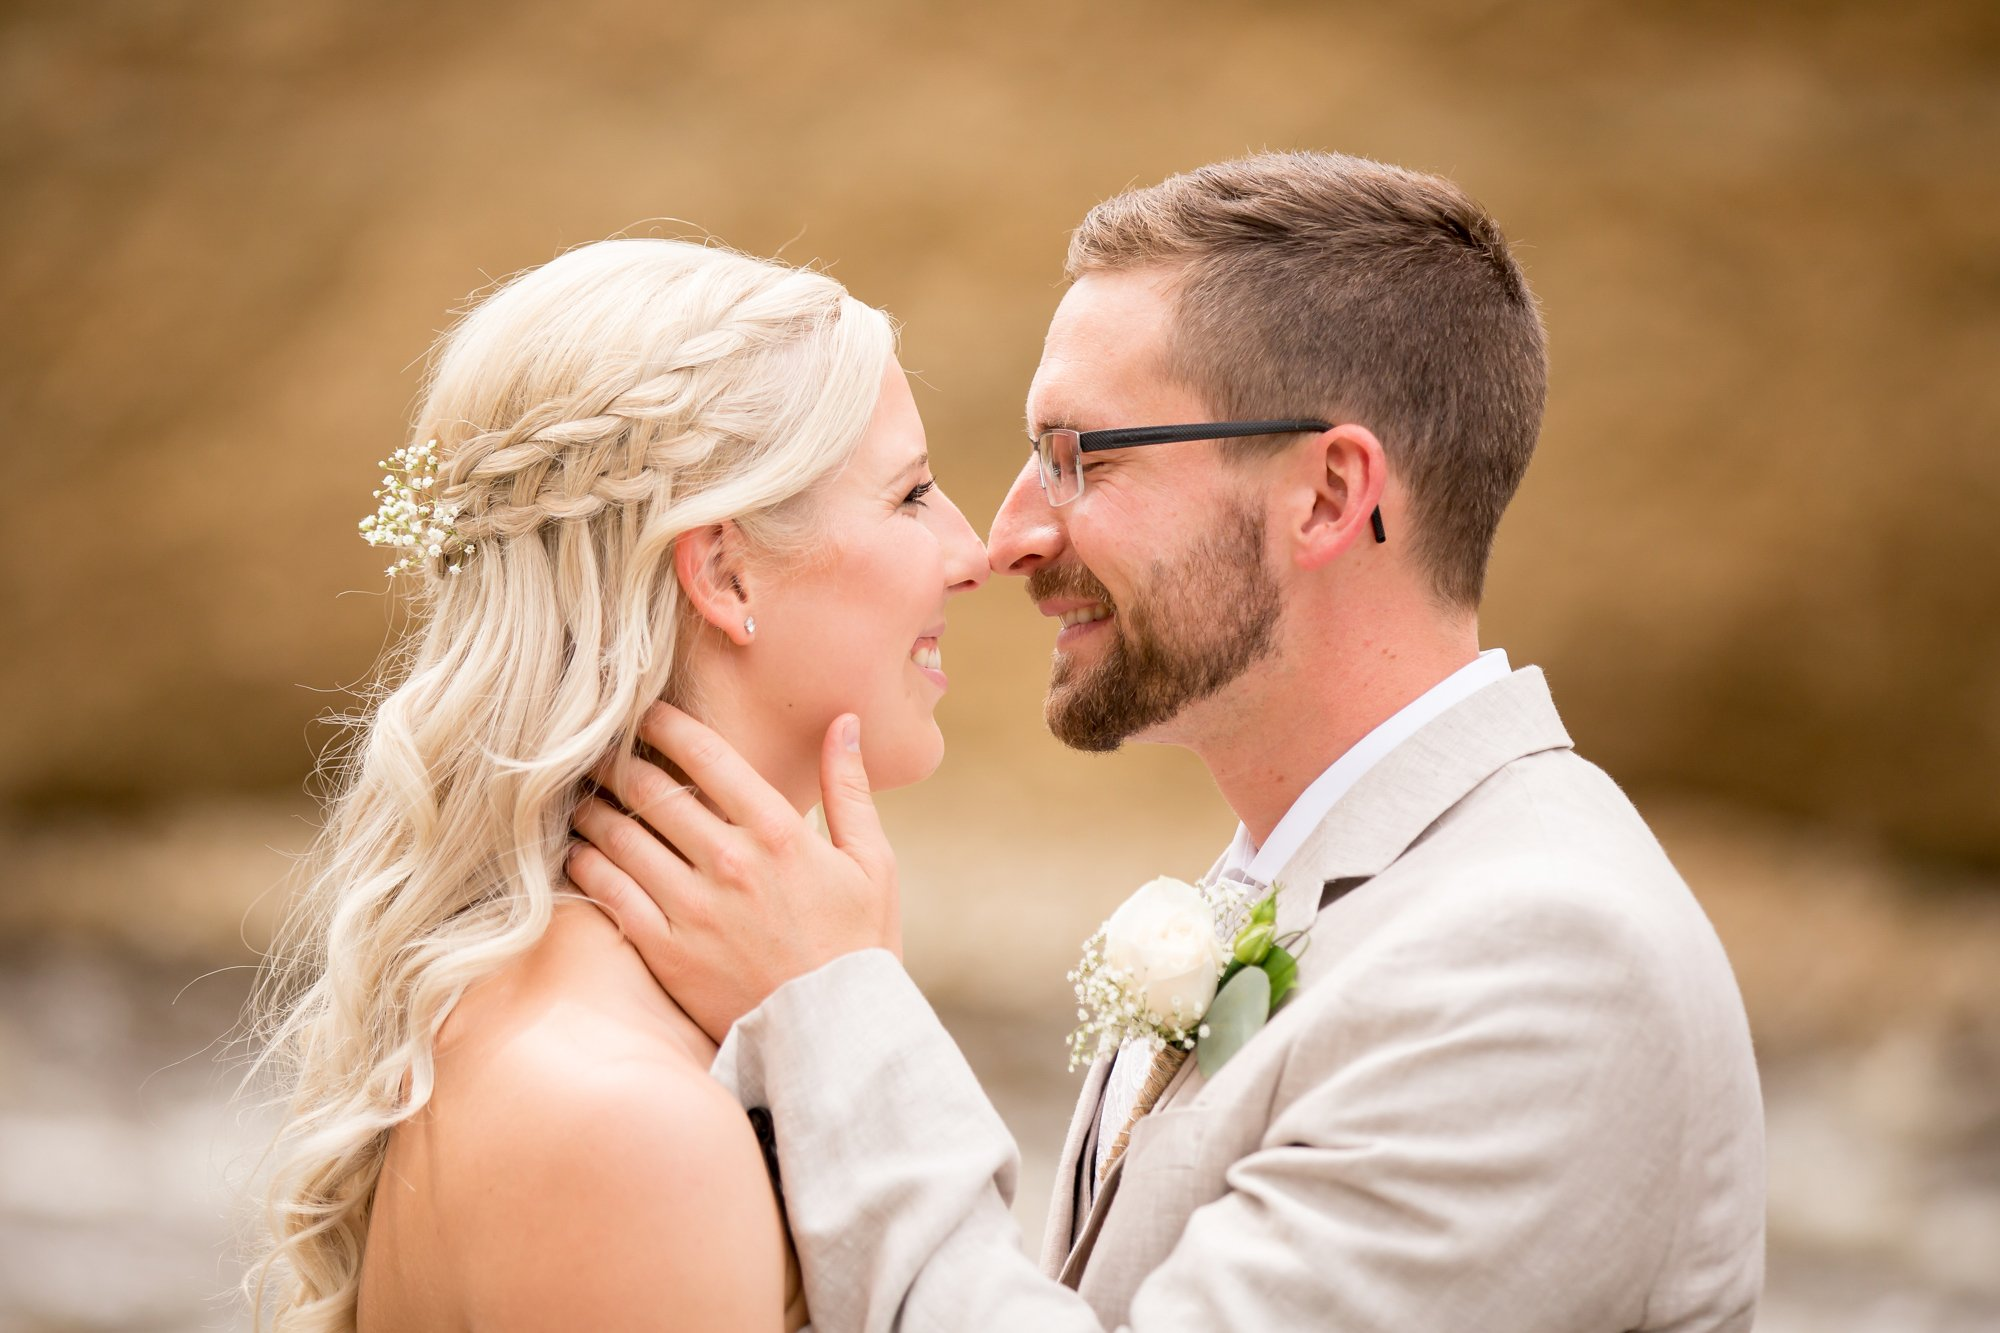 A bride and groom touching noses together